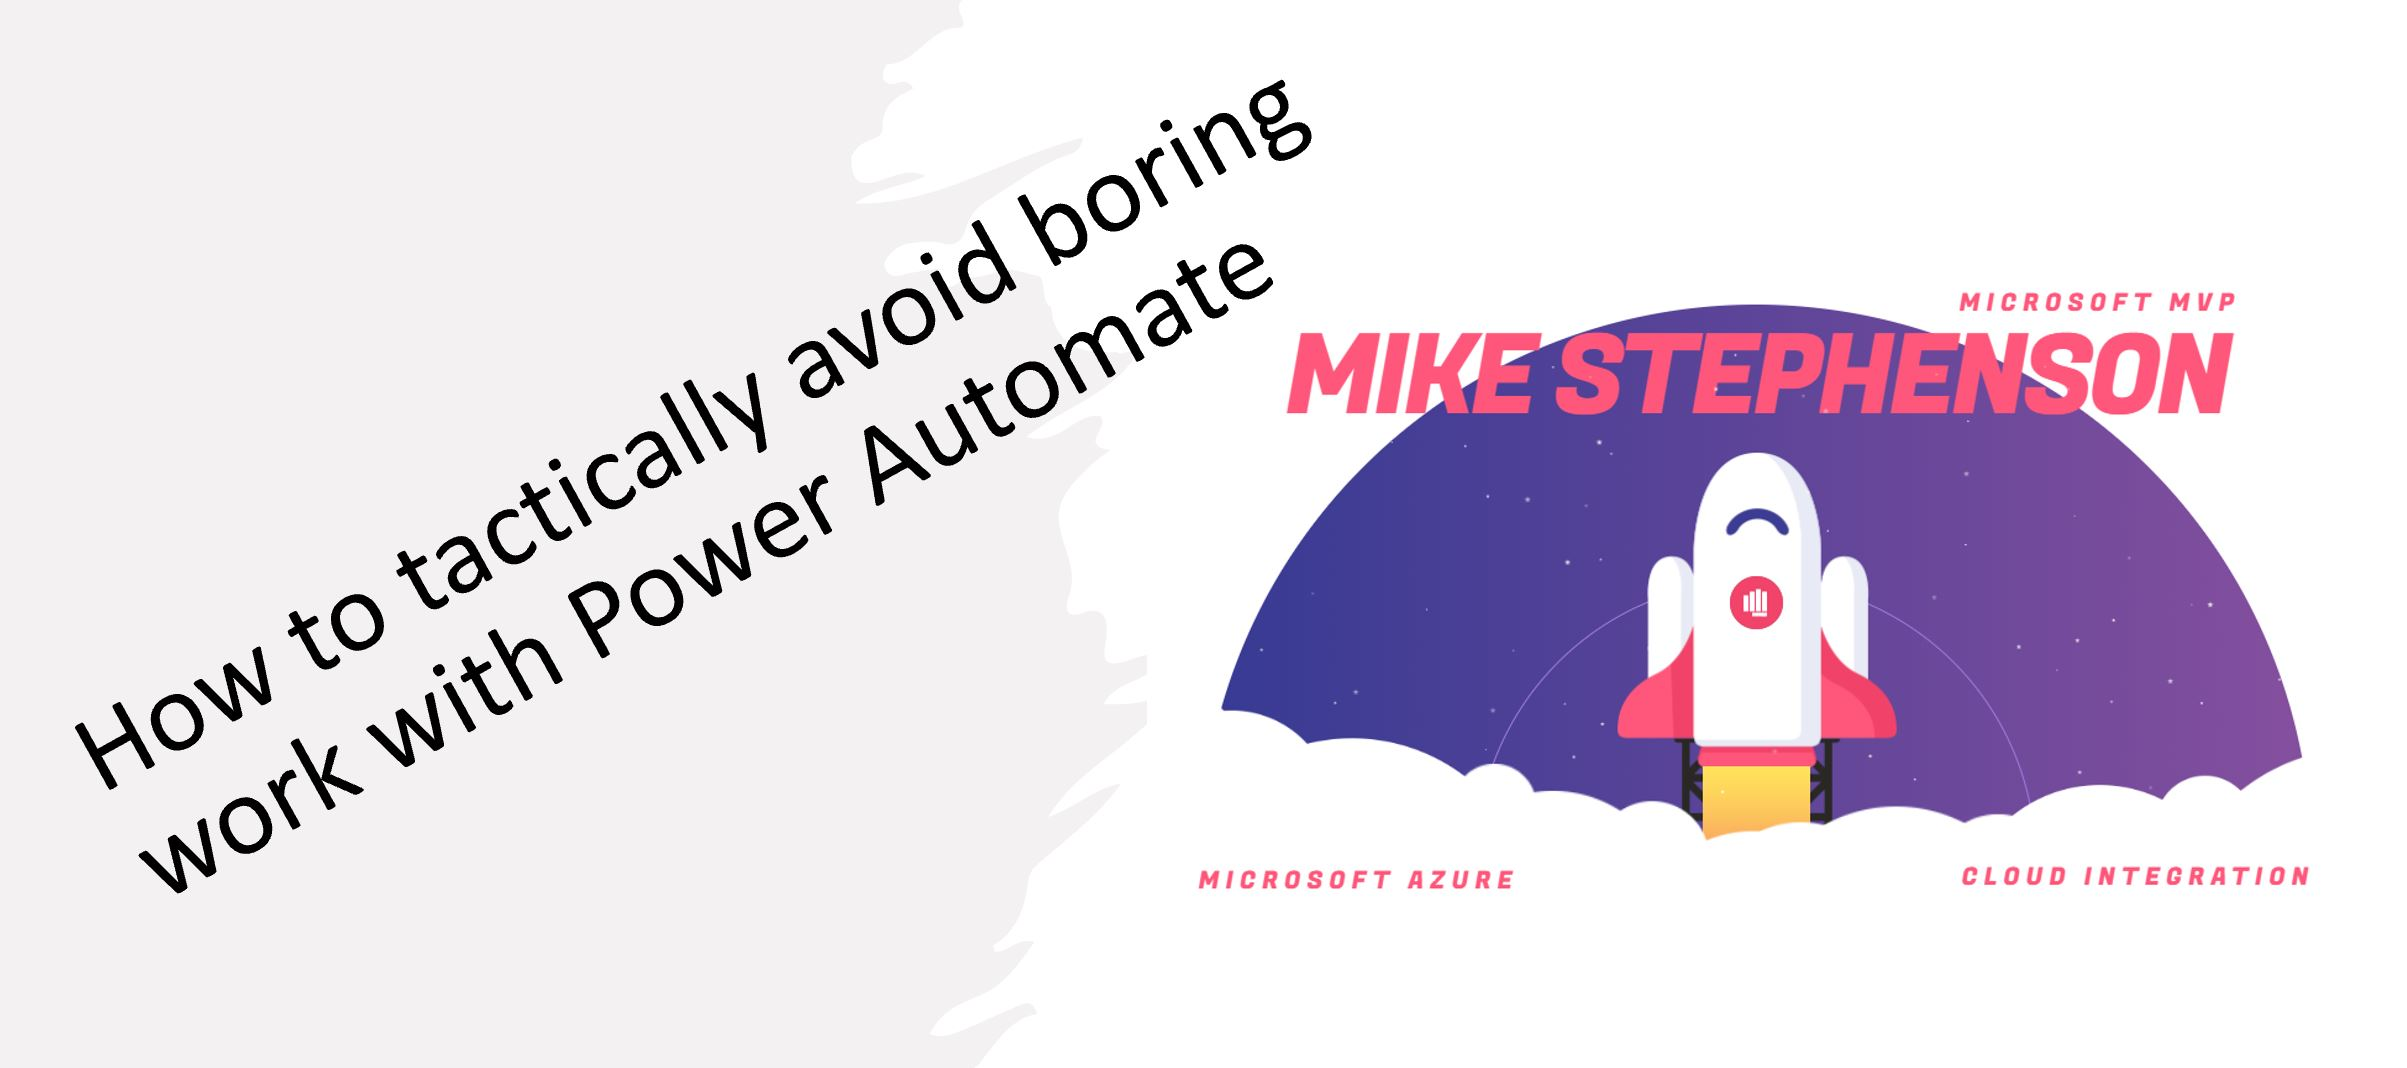 How to tactically avoid boring work with Power Automate